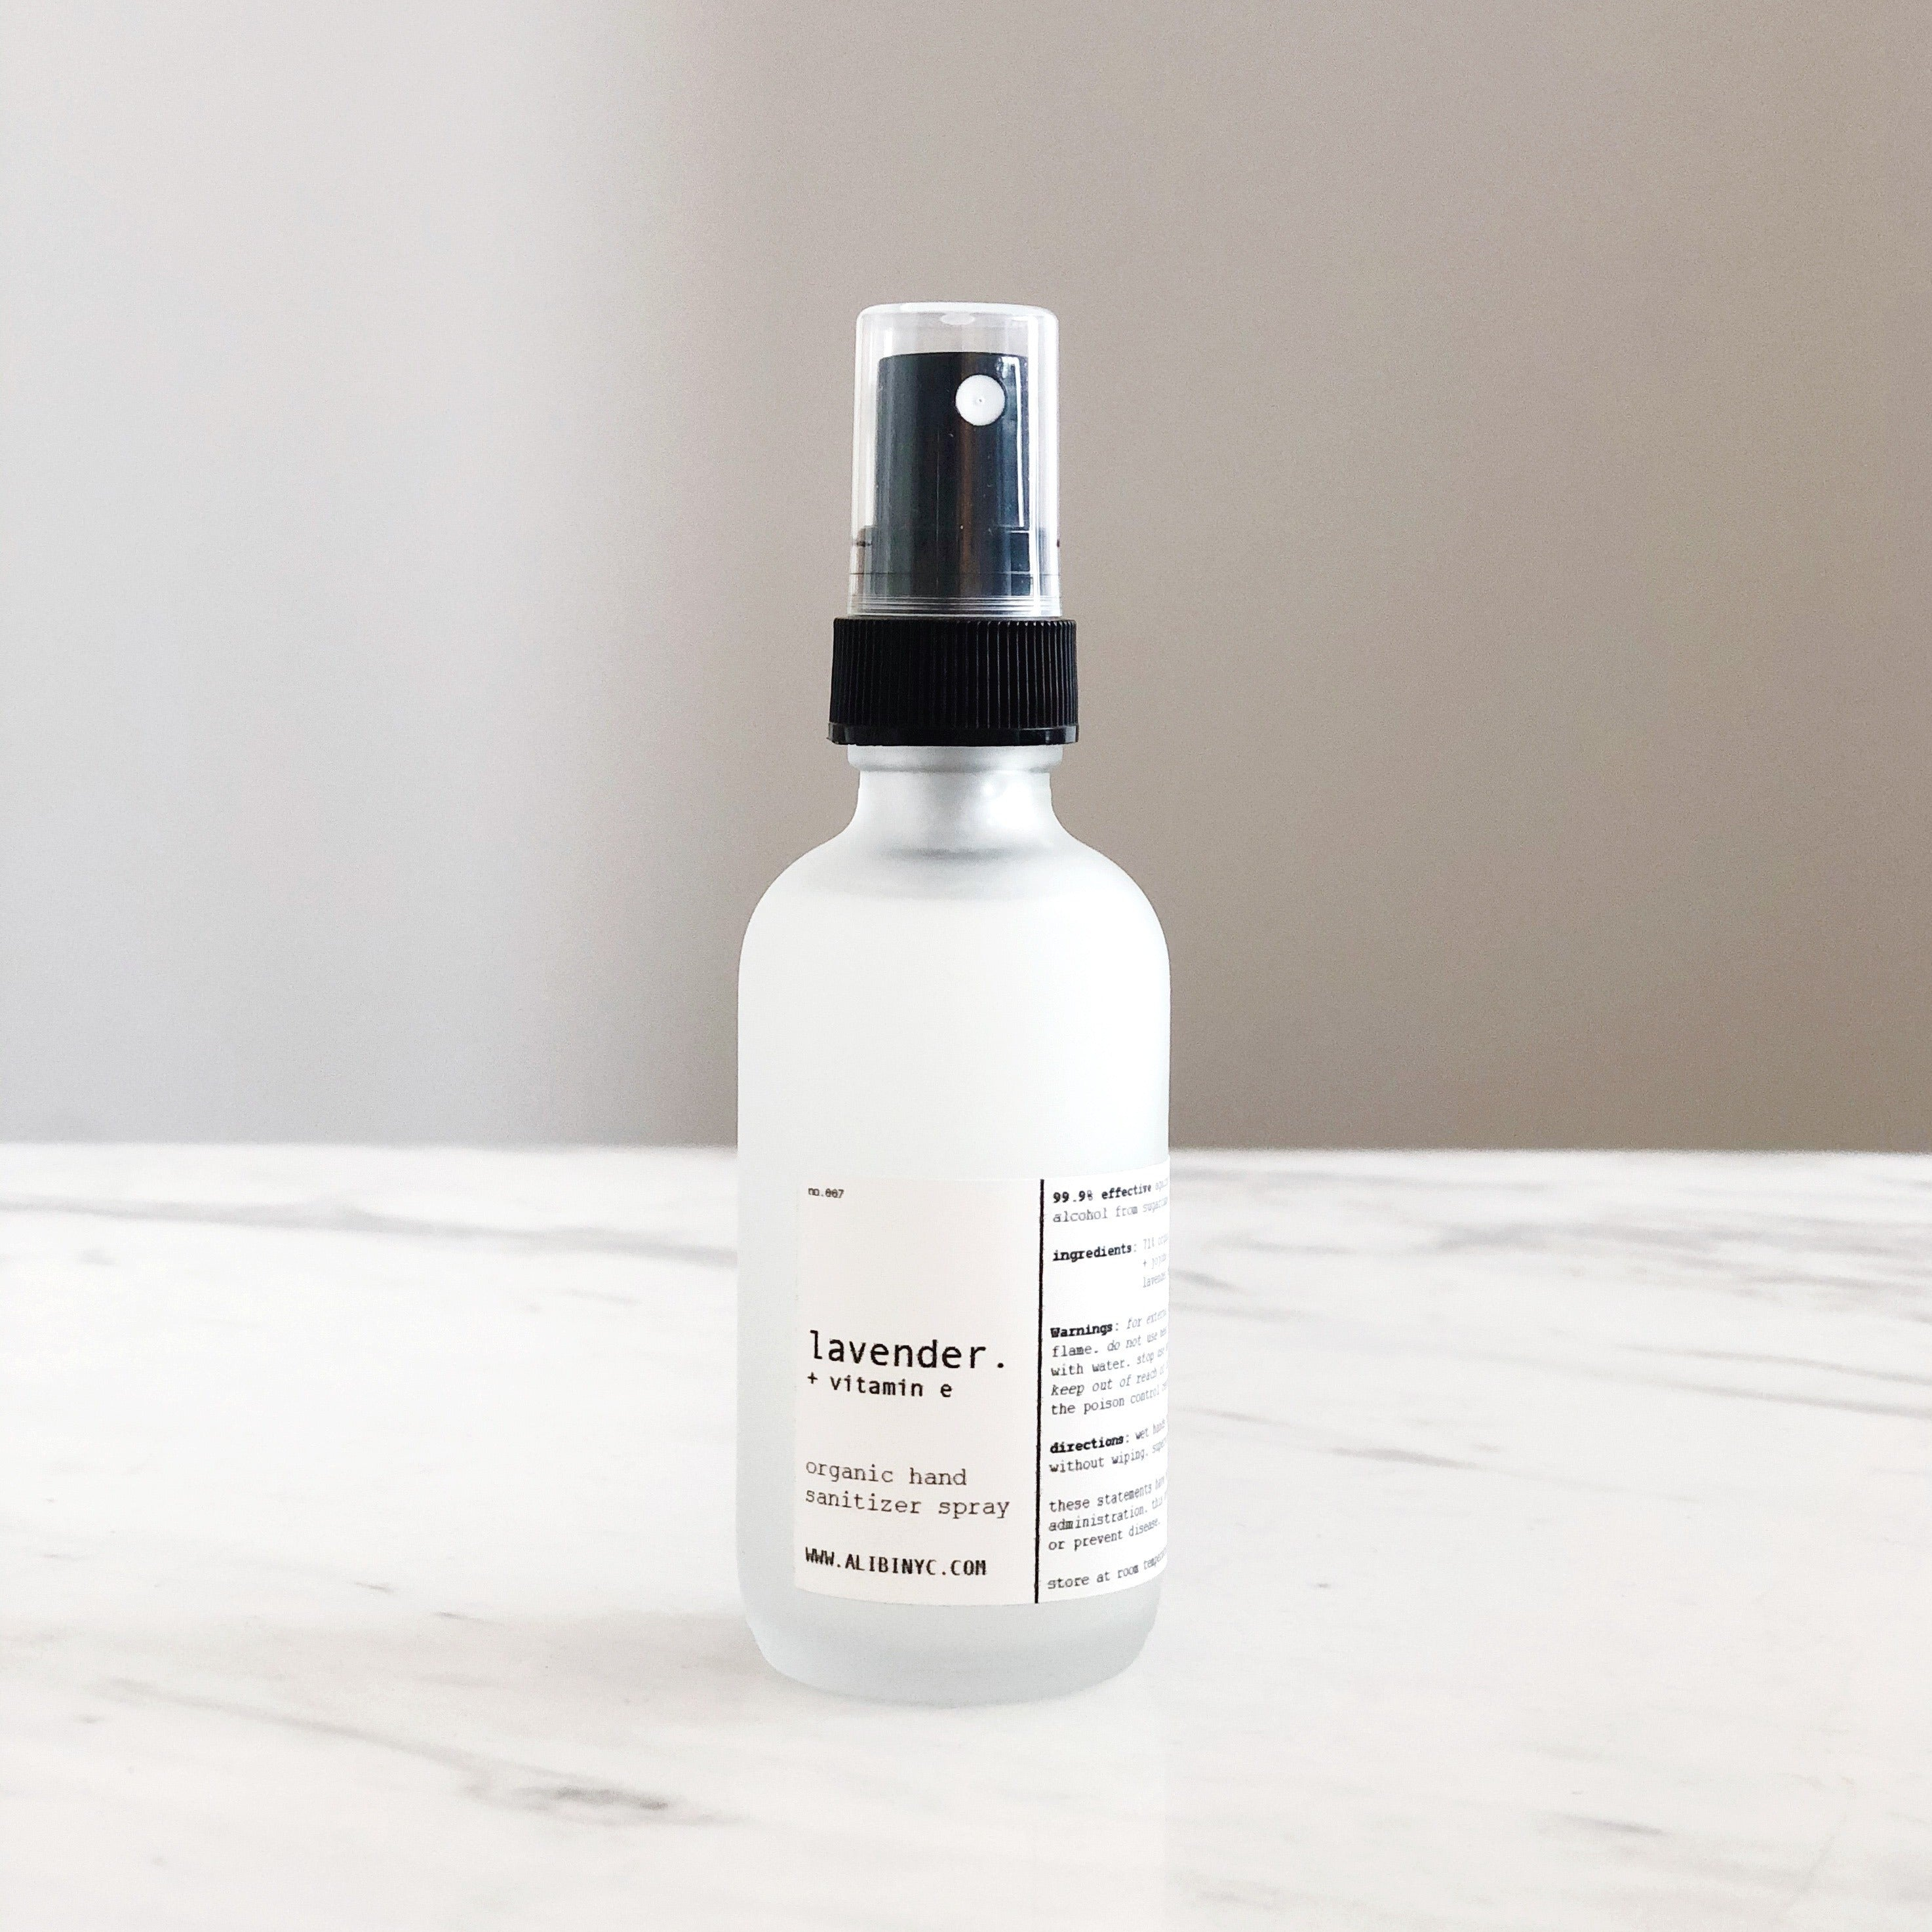 Alibi NYC Organic Hand Sanitizer Spray - CARLYLE AVENUE